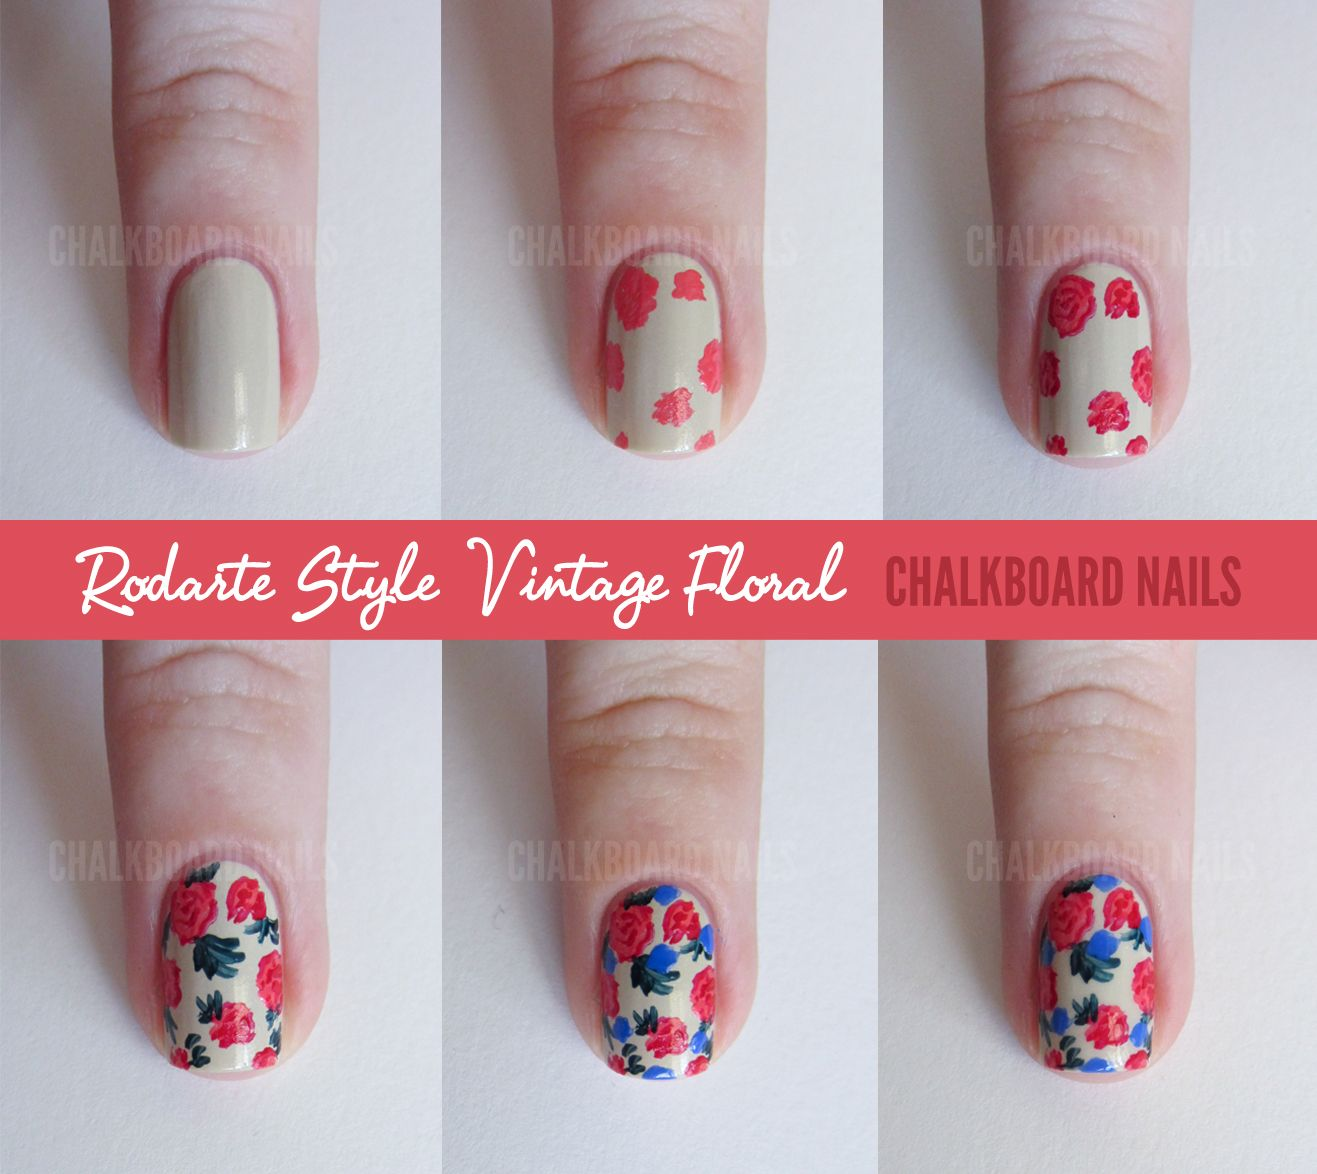 Chalkboard Nails Sally Hansen X Rodarte Tie Dye And Fl Mix Tutorial Nail Art Iheartnailart Mcwilliam